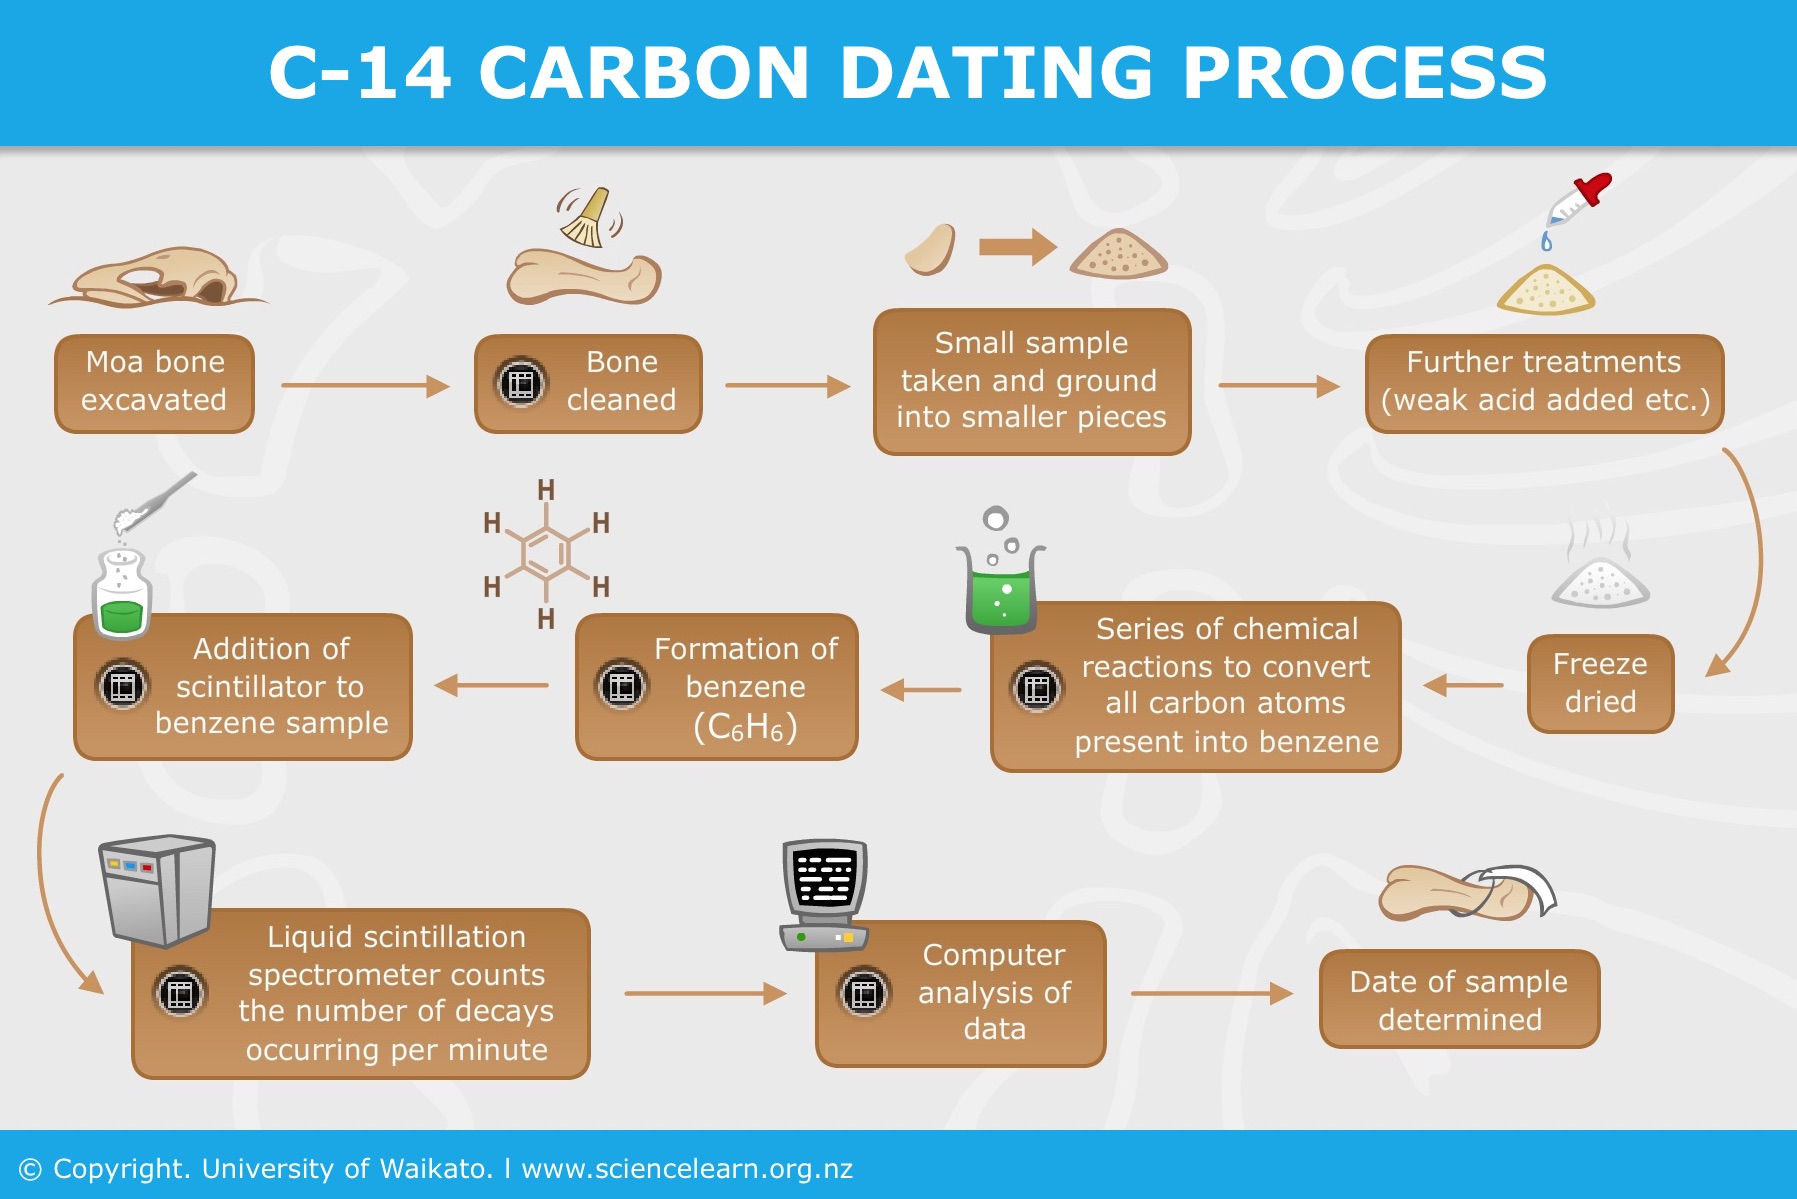 Who first developed the process of carbon dating